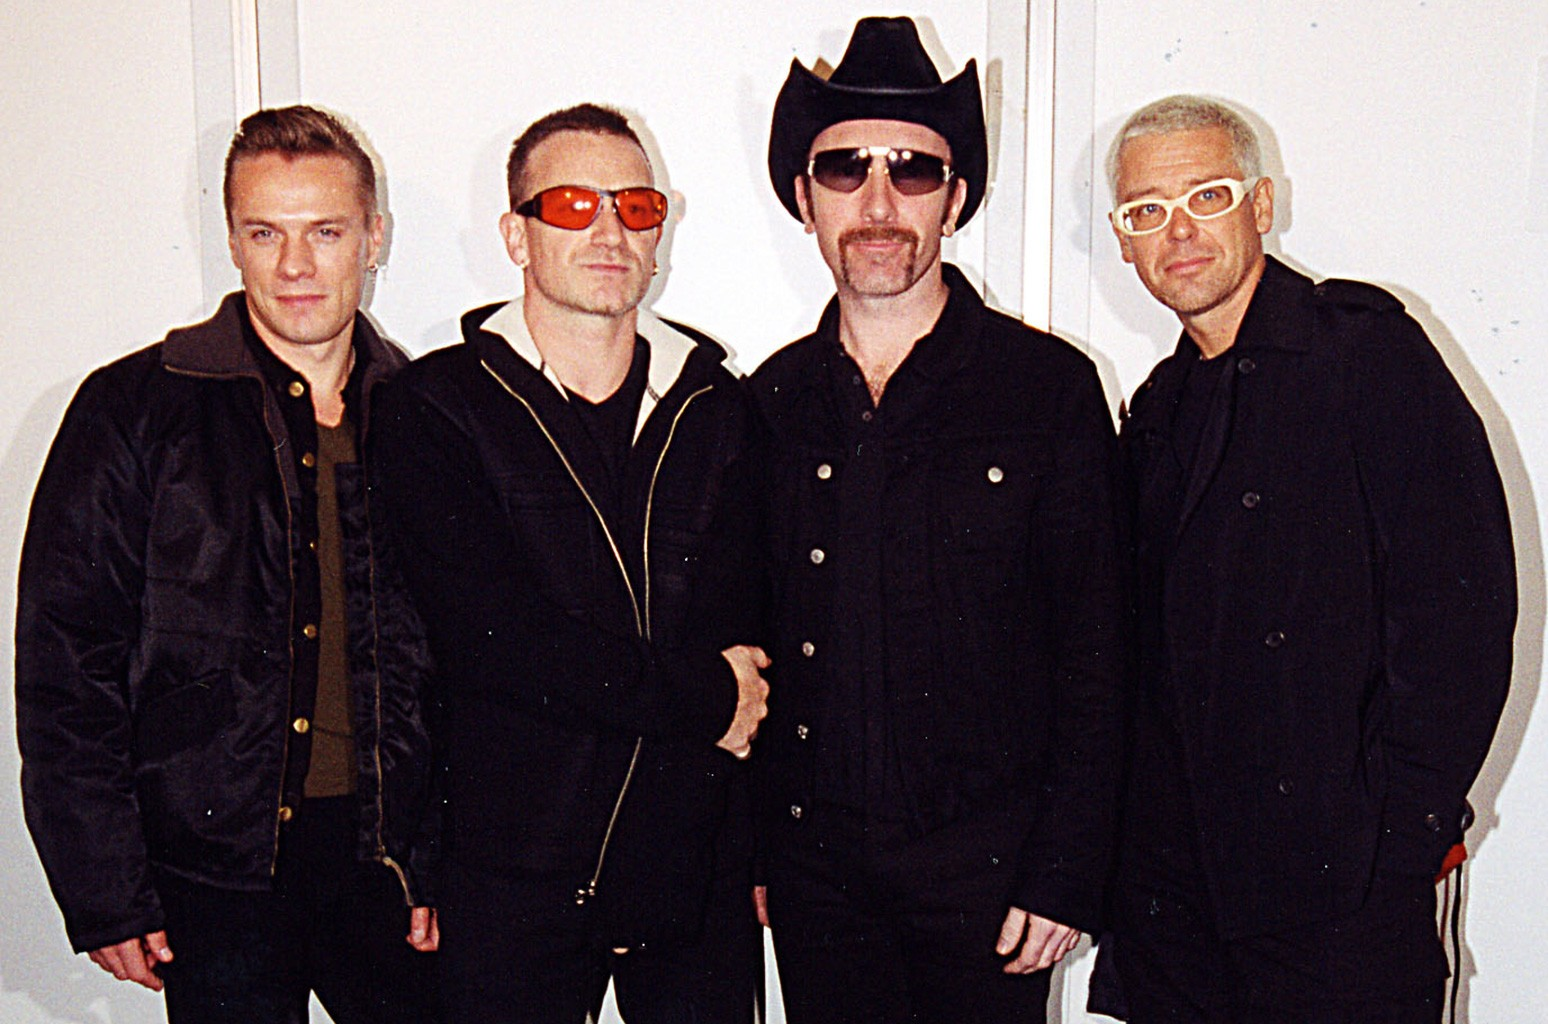 U2 photographed in 1997.